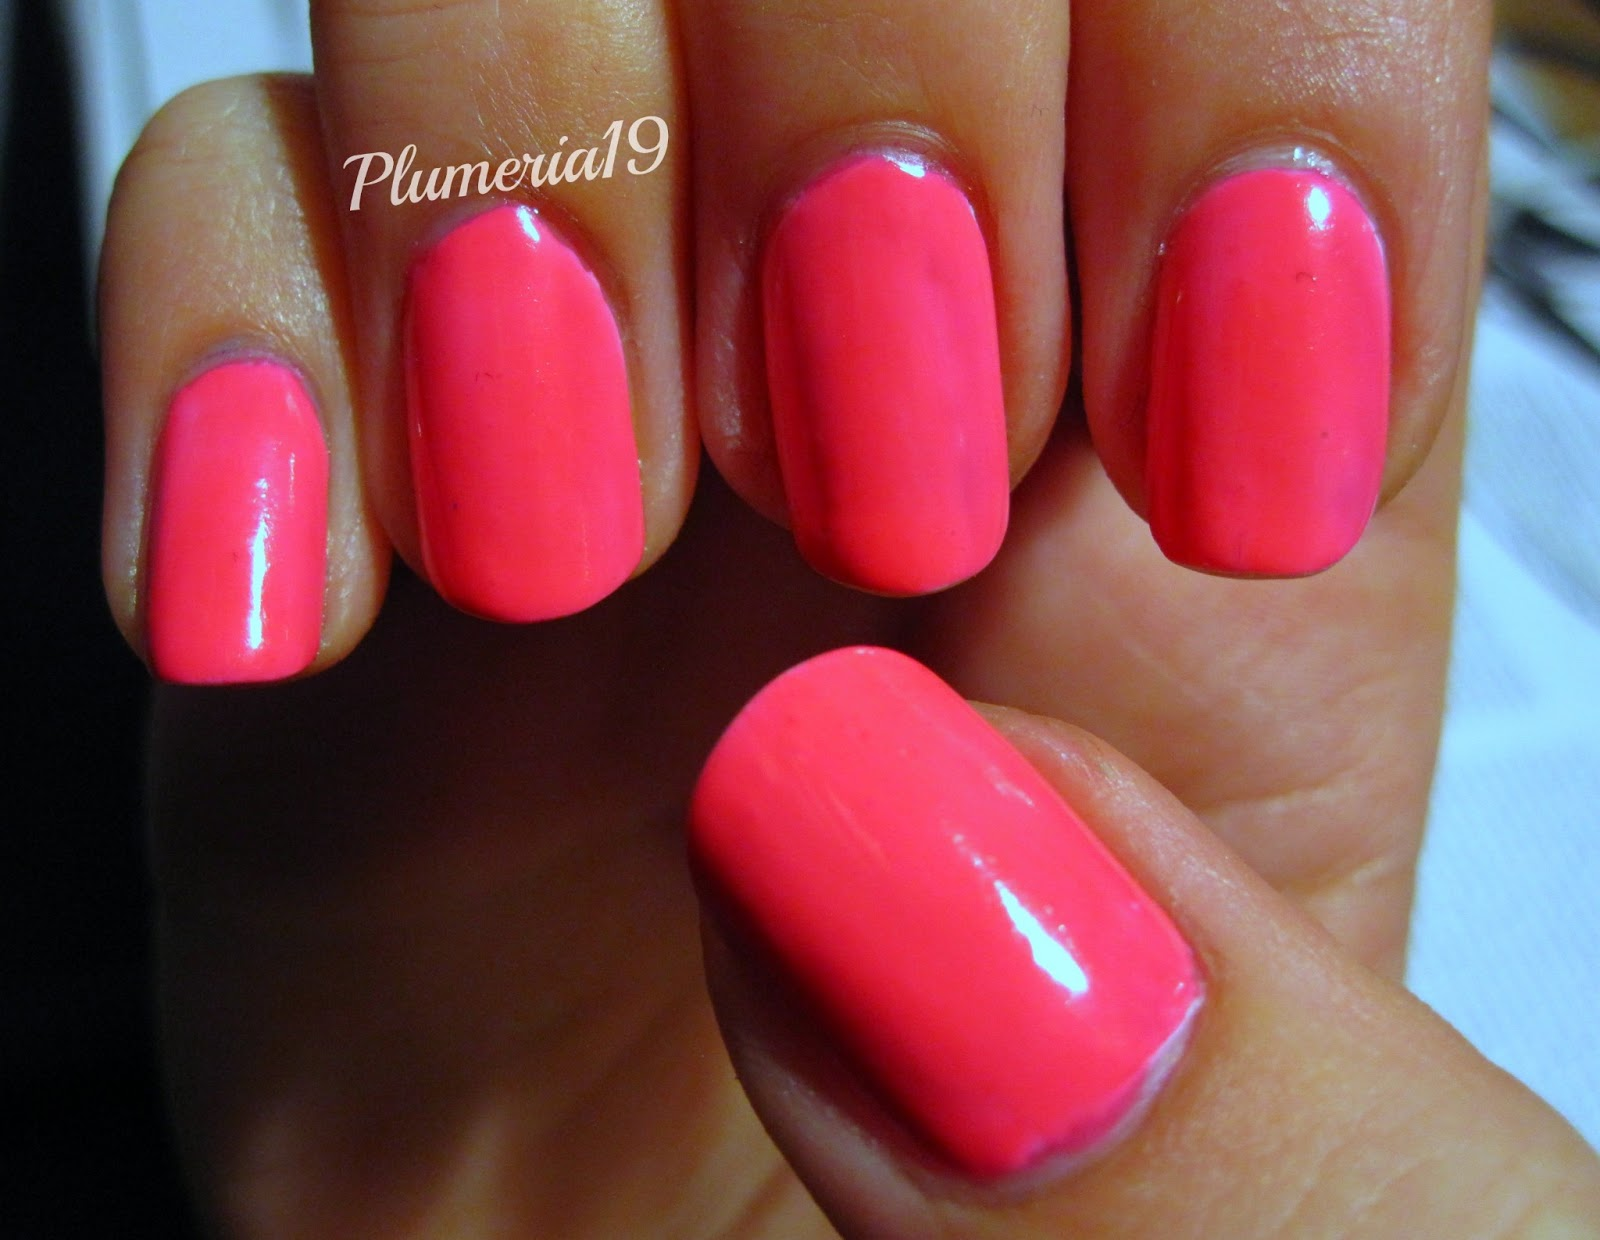 PlumeriaPainted: Pink Nails: Nails Inc - Notting Hill Gate